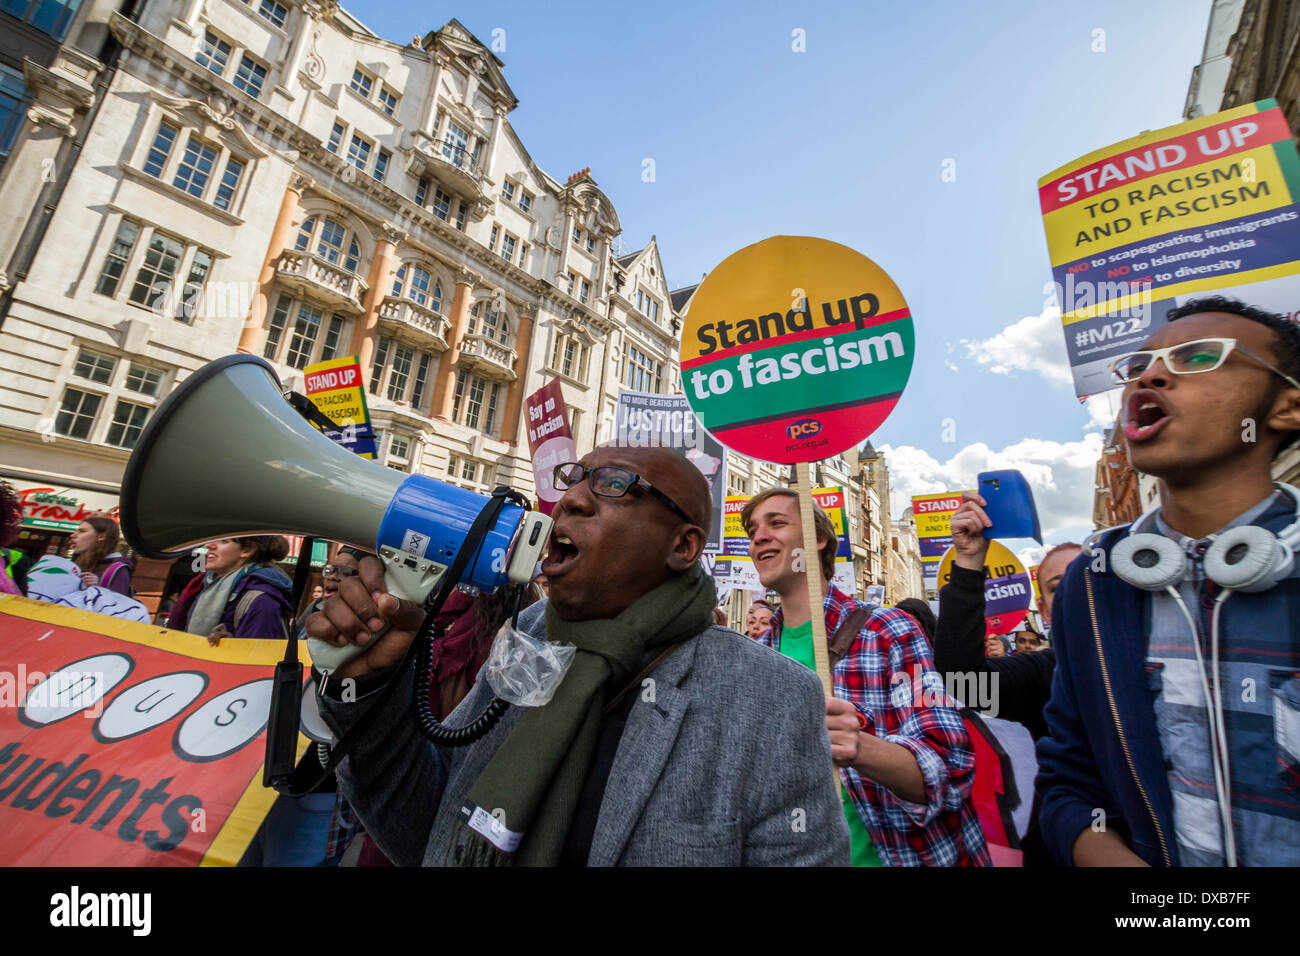 March against racism and fascism on United Nations International Anti-Racism Day in London - Stock Image